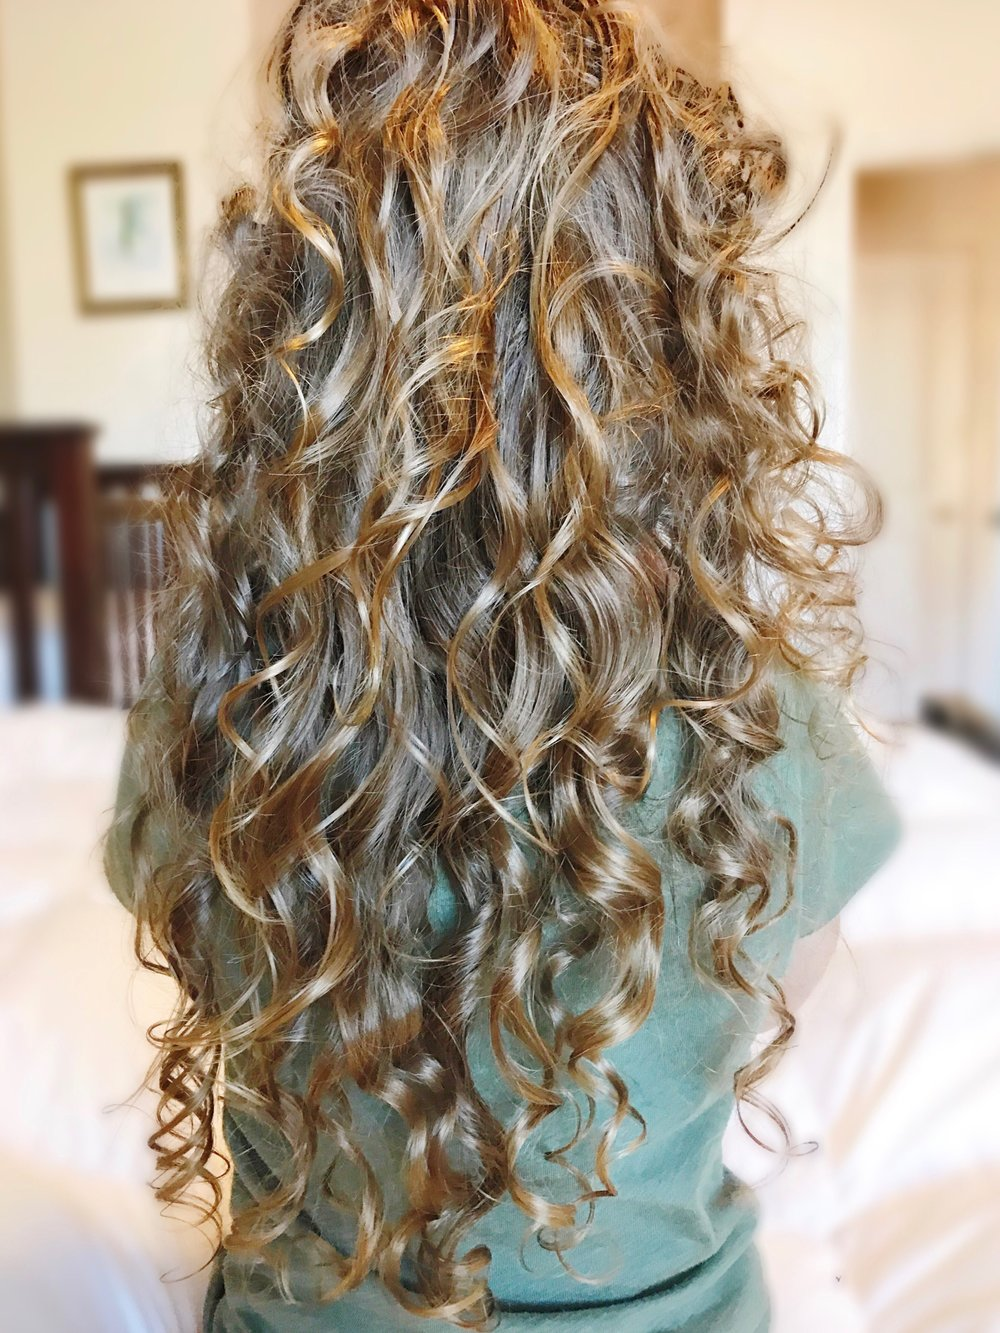 Sawyer's Clean Beauty Curly-Hair Routine - Available from Beauty Heroes! | janny: organically.